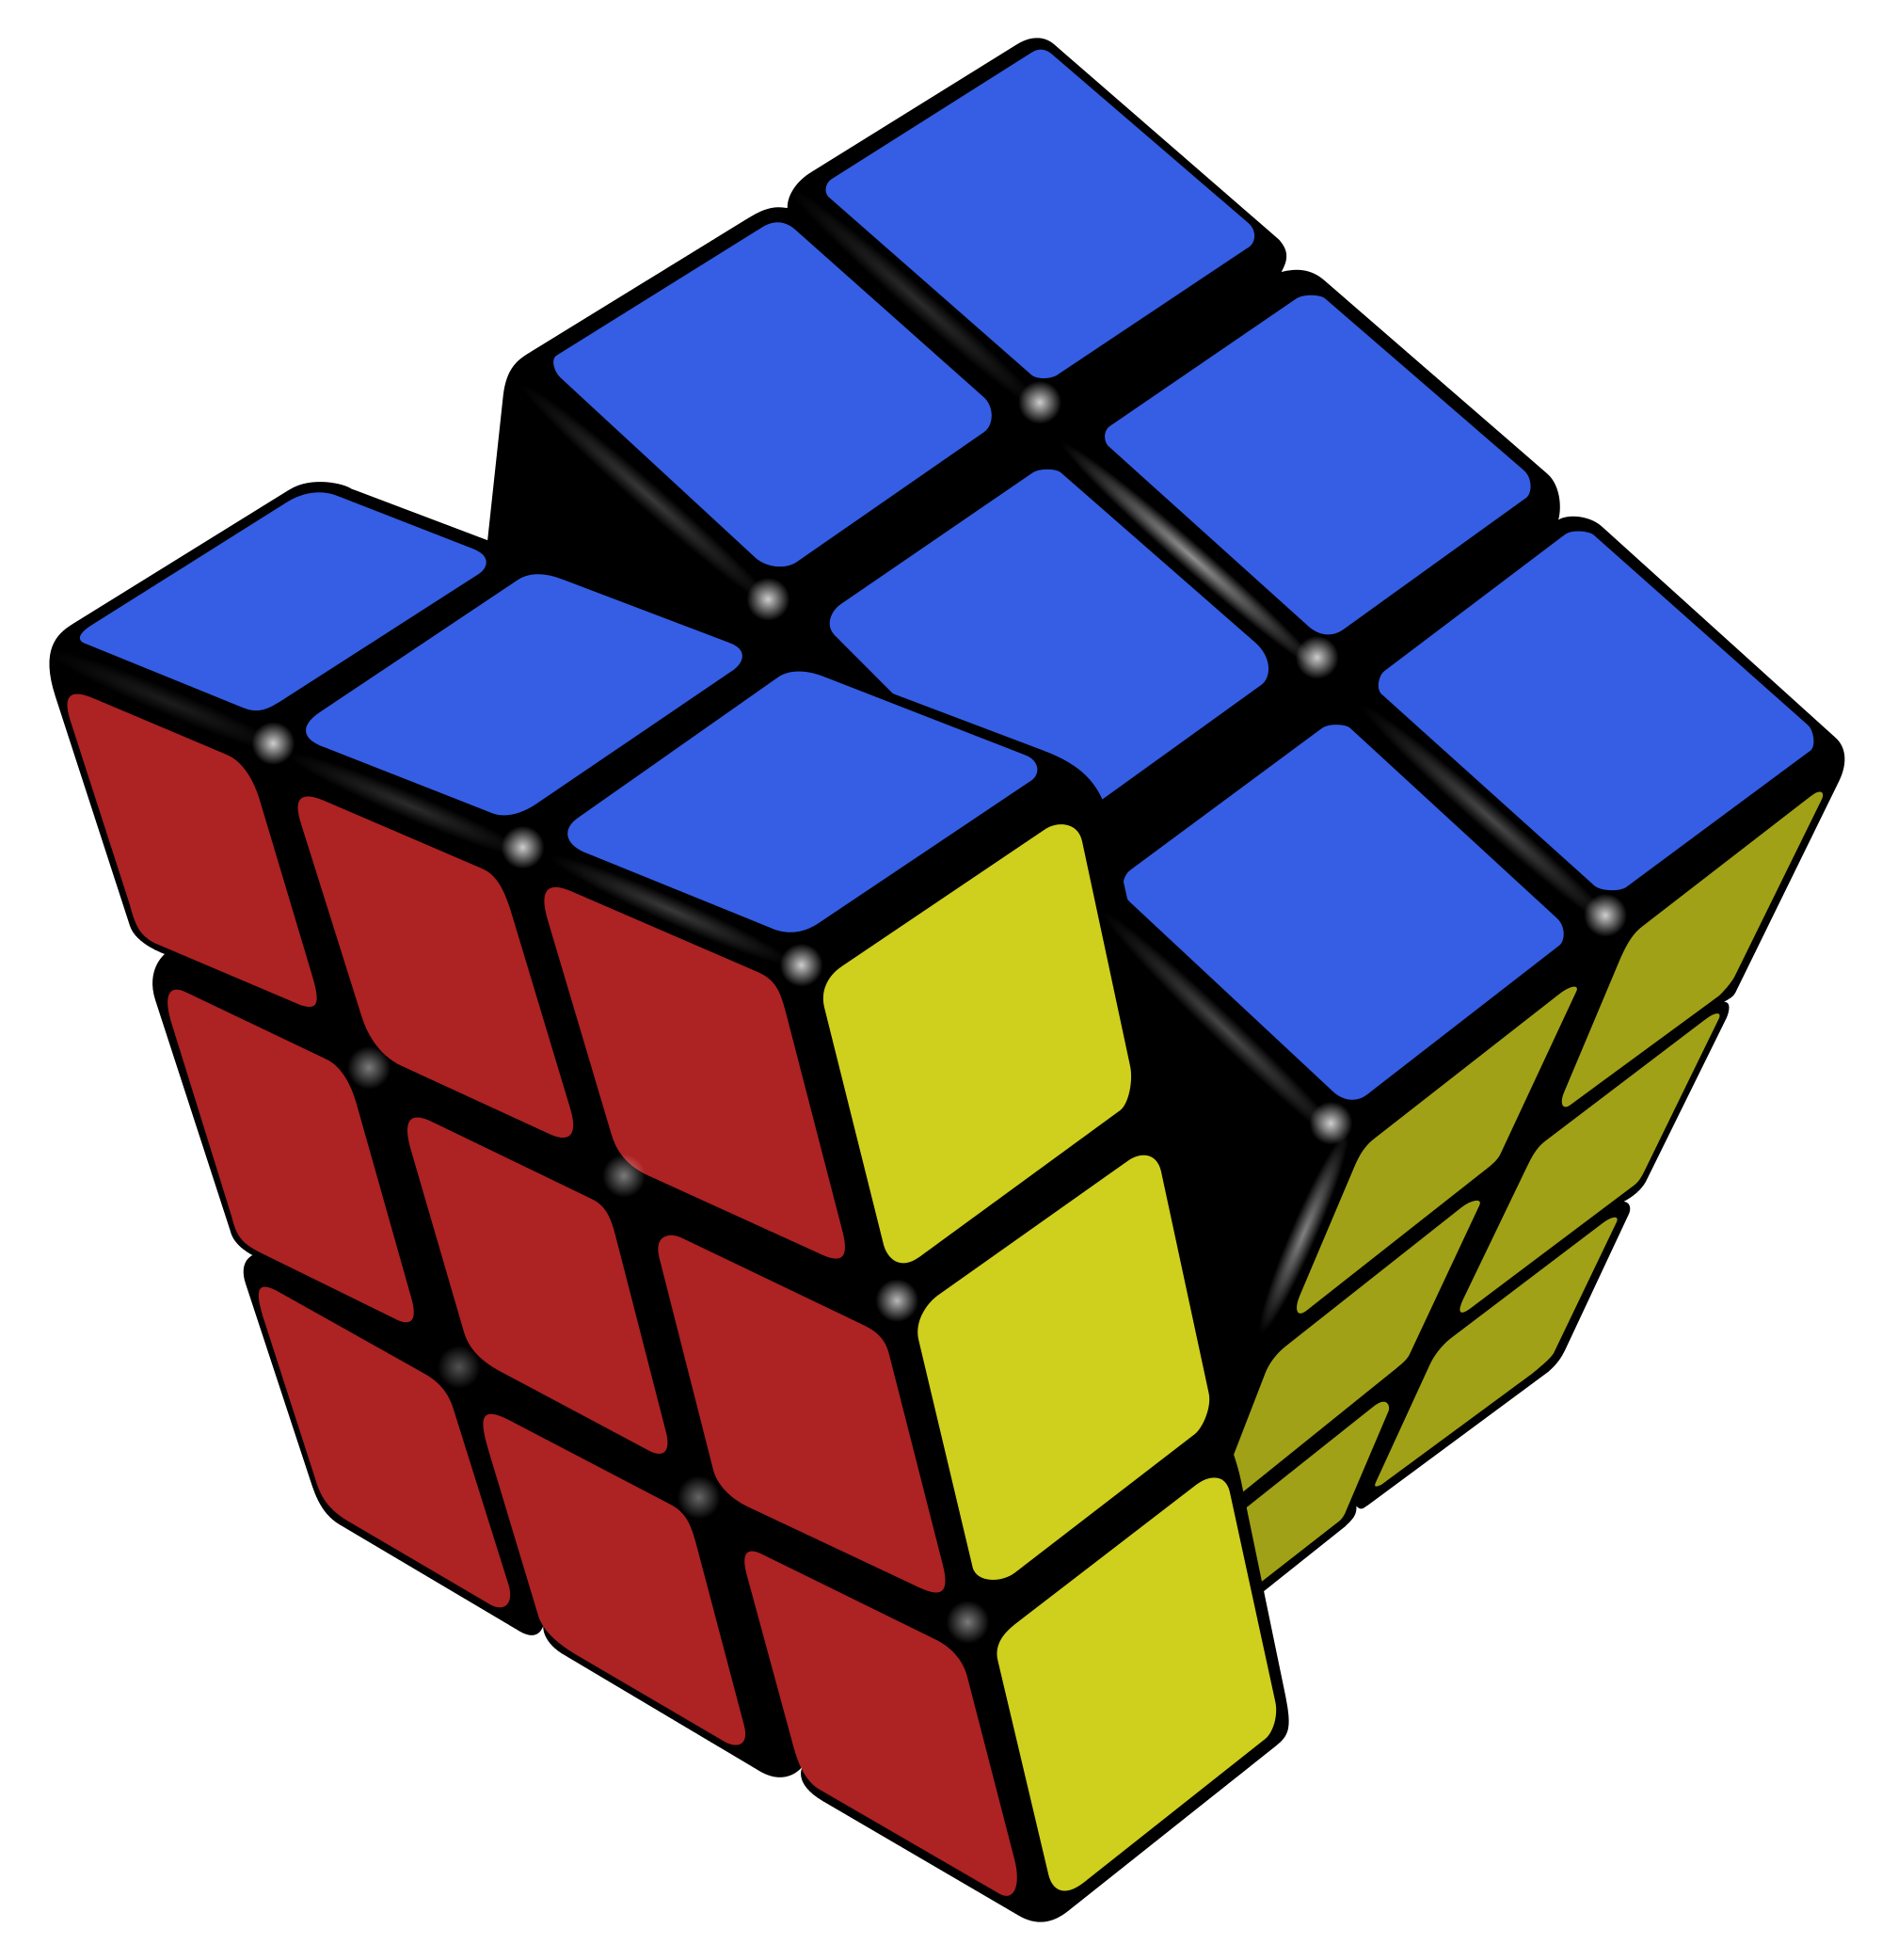 Rubix clipart royalty free download Pin by Udash on Clipart   Cube, Cube puzzle, Cool cube royalty free download